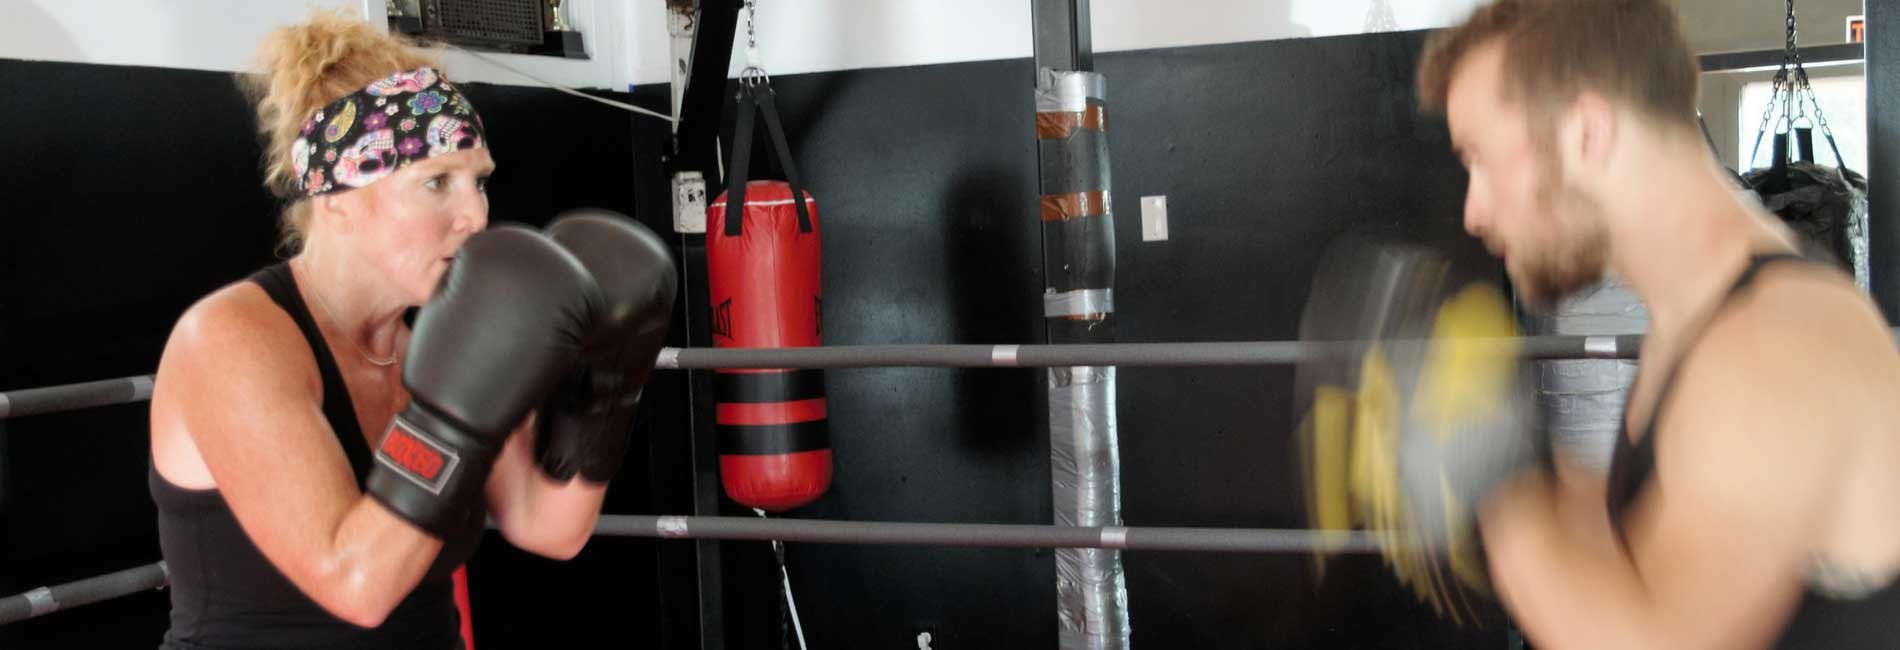 Standard swscd   boxing  1   activity banner image  1900x650